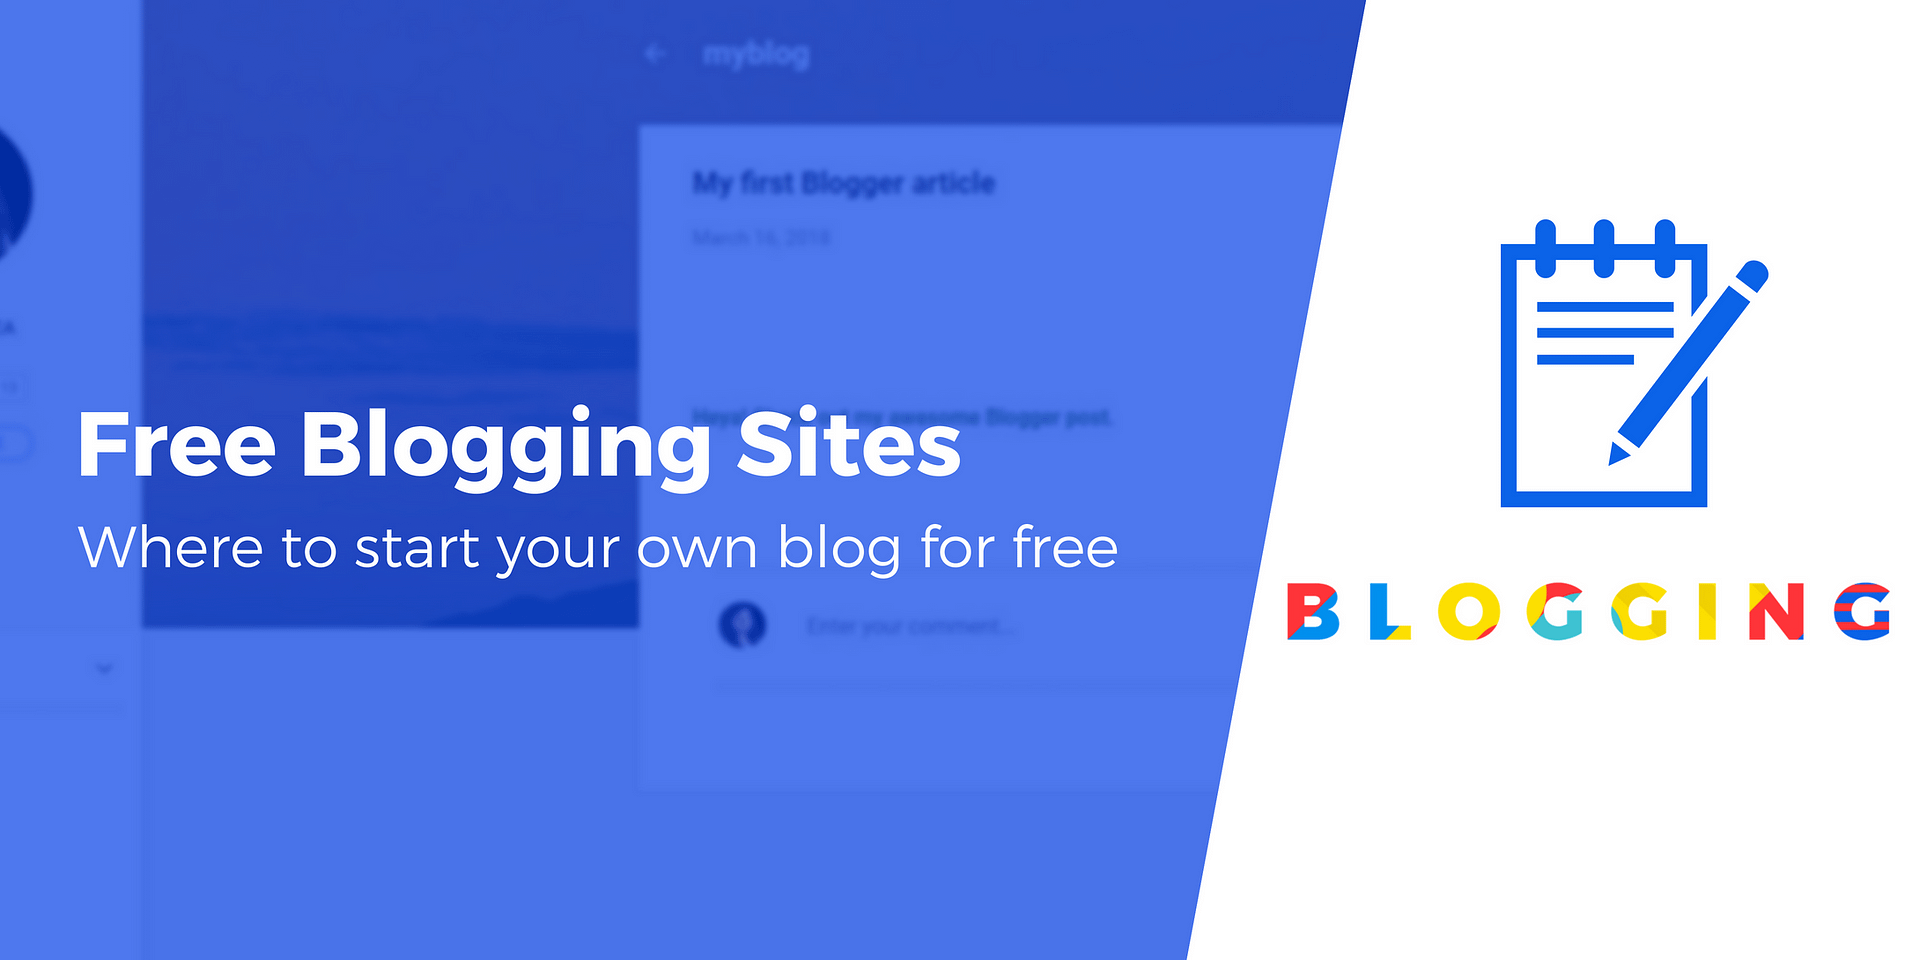 9 Best Free Blogging Sites: Launch a Blog Without Spending a Dime